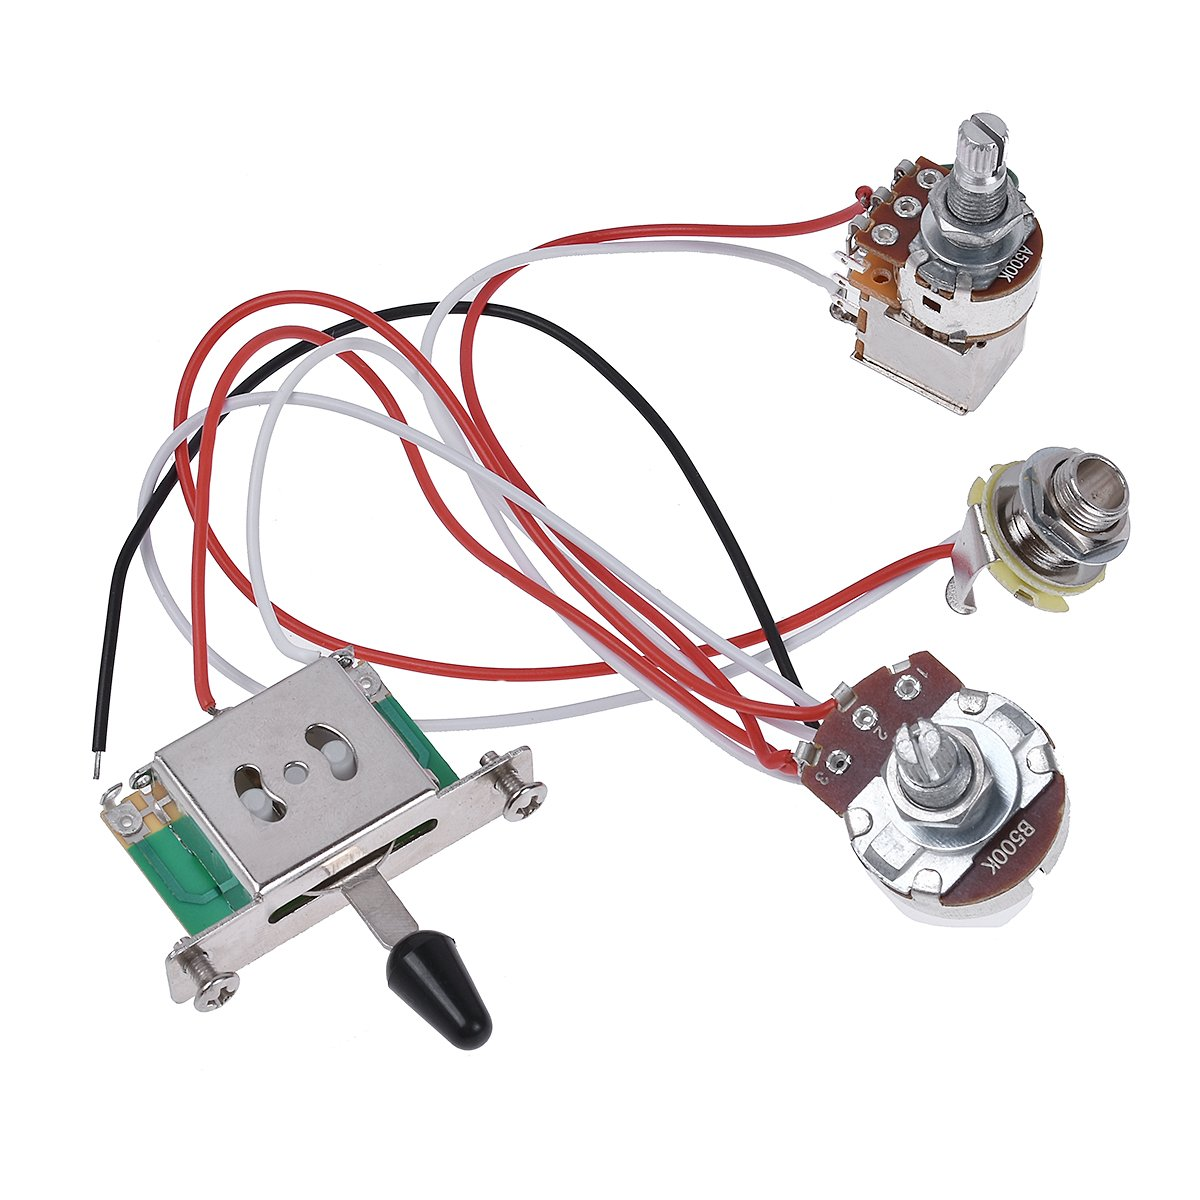 Kmise Electric Guitar Wiring Harness Prewired Kit 3 Way Toggle Switch 1 Volume Tone 500k